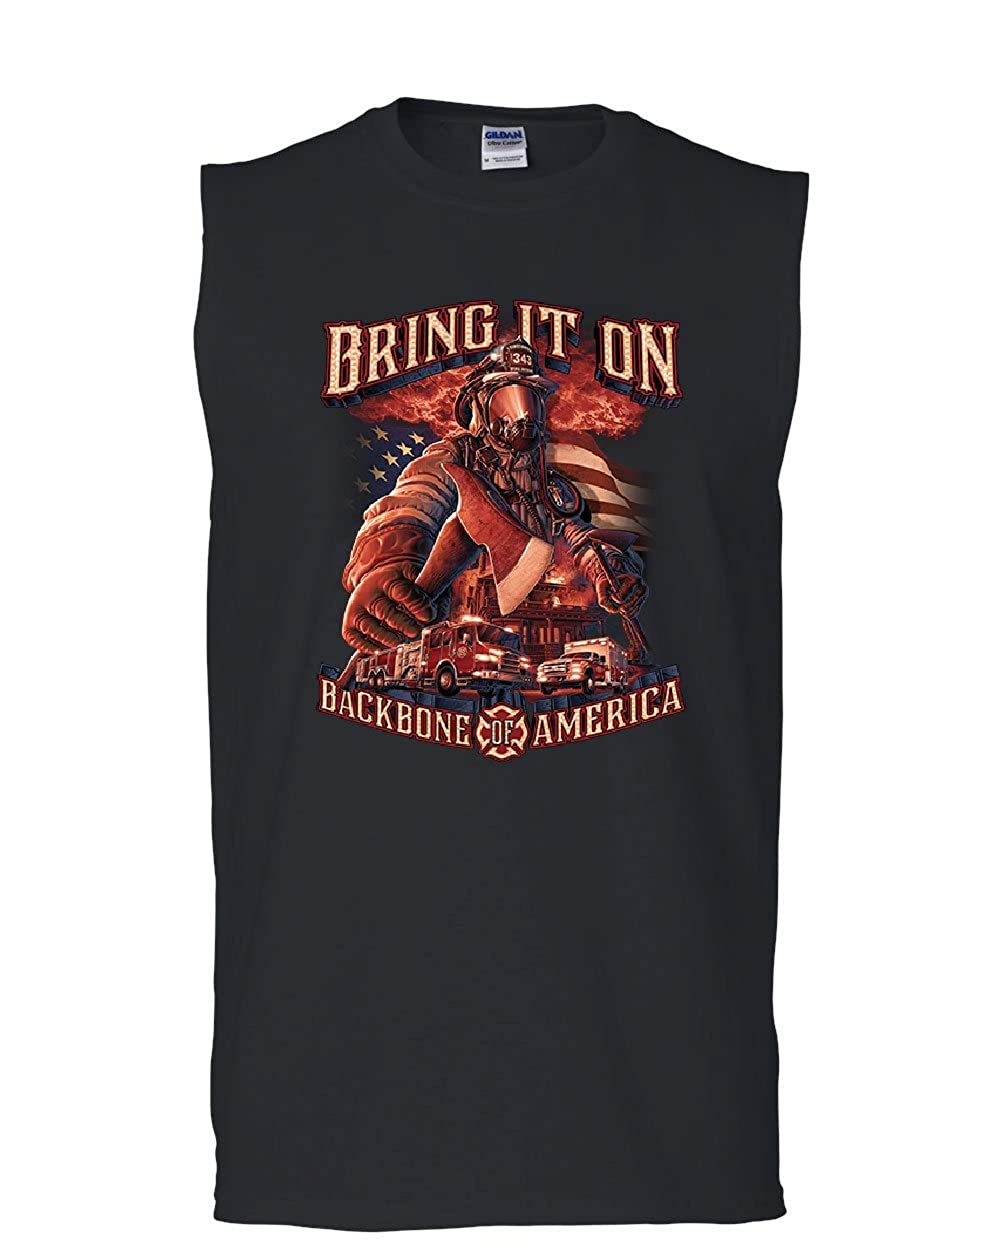 Tee Hunt Firefighter Backbone of America Muscle Shirt FD Fire and Rescue Hero Sleeveless